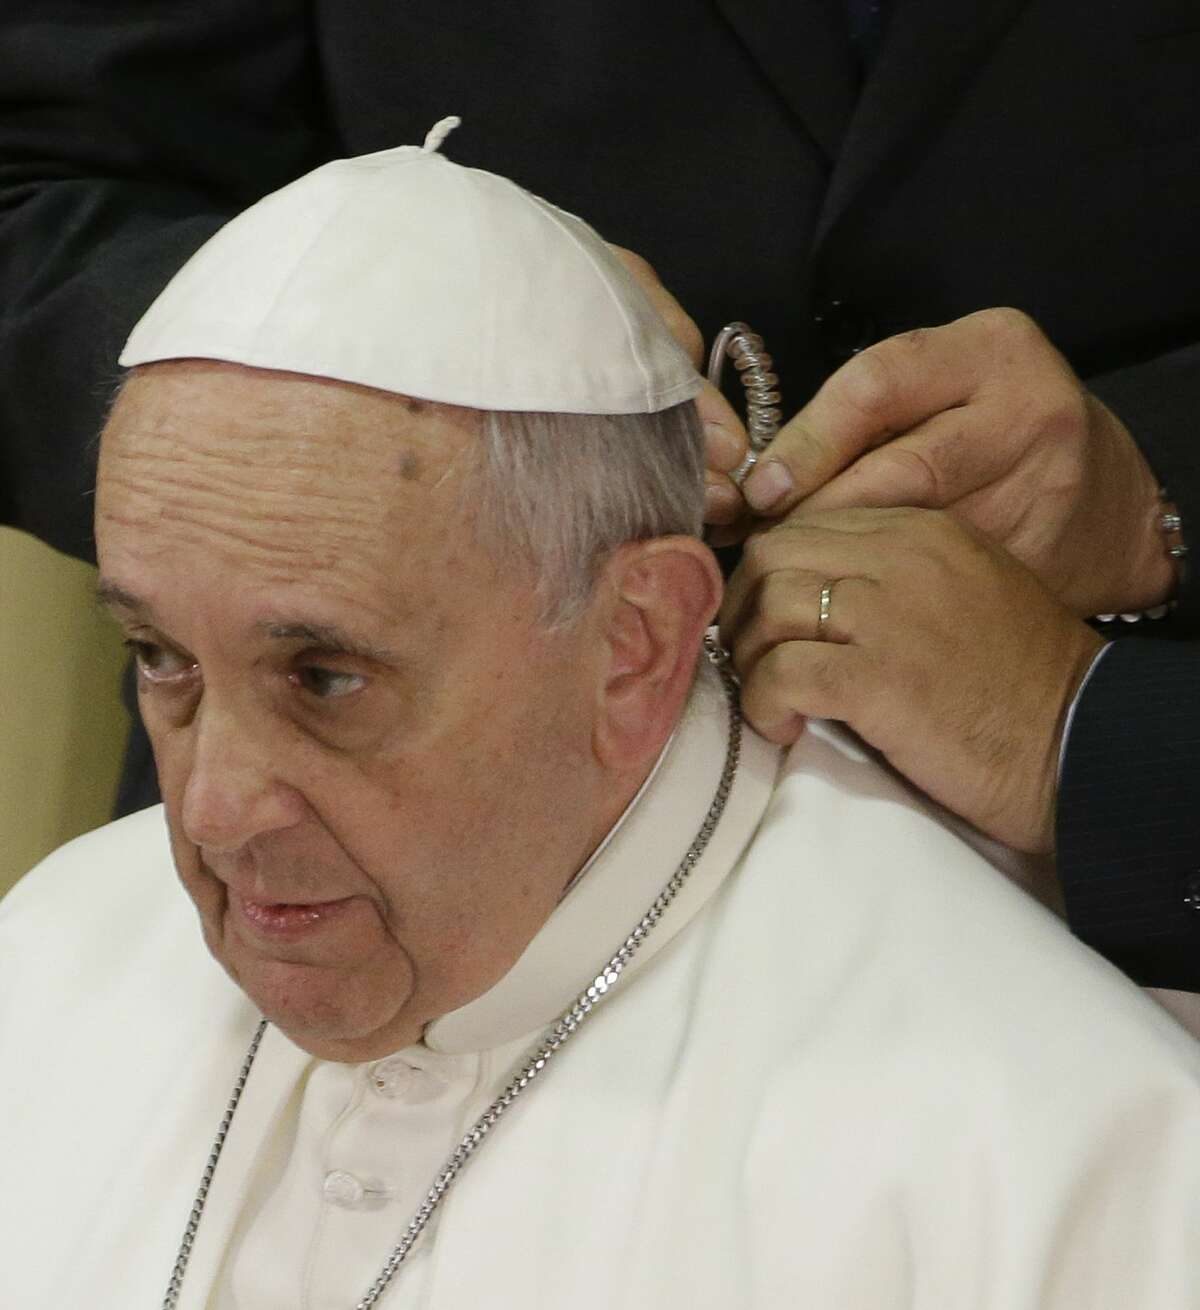 Pope Francis has an headset applied by two Vatican radio technicians prior to giving his his speech in the Synod hall on the occasion of the closing ceremony of the IV Scholas Occurrentes World Educational Congress, at the Vatican, Thursday, Feb. 5, 2015. (AP Photo/Gregorio Borgia)